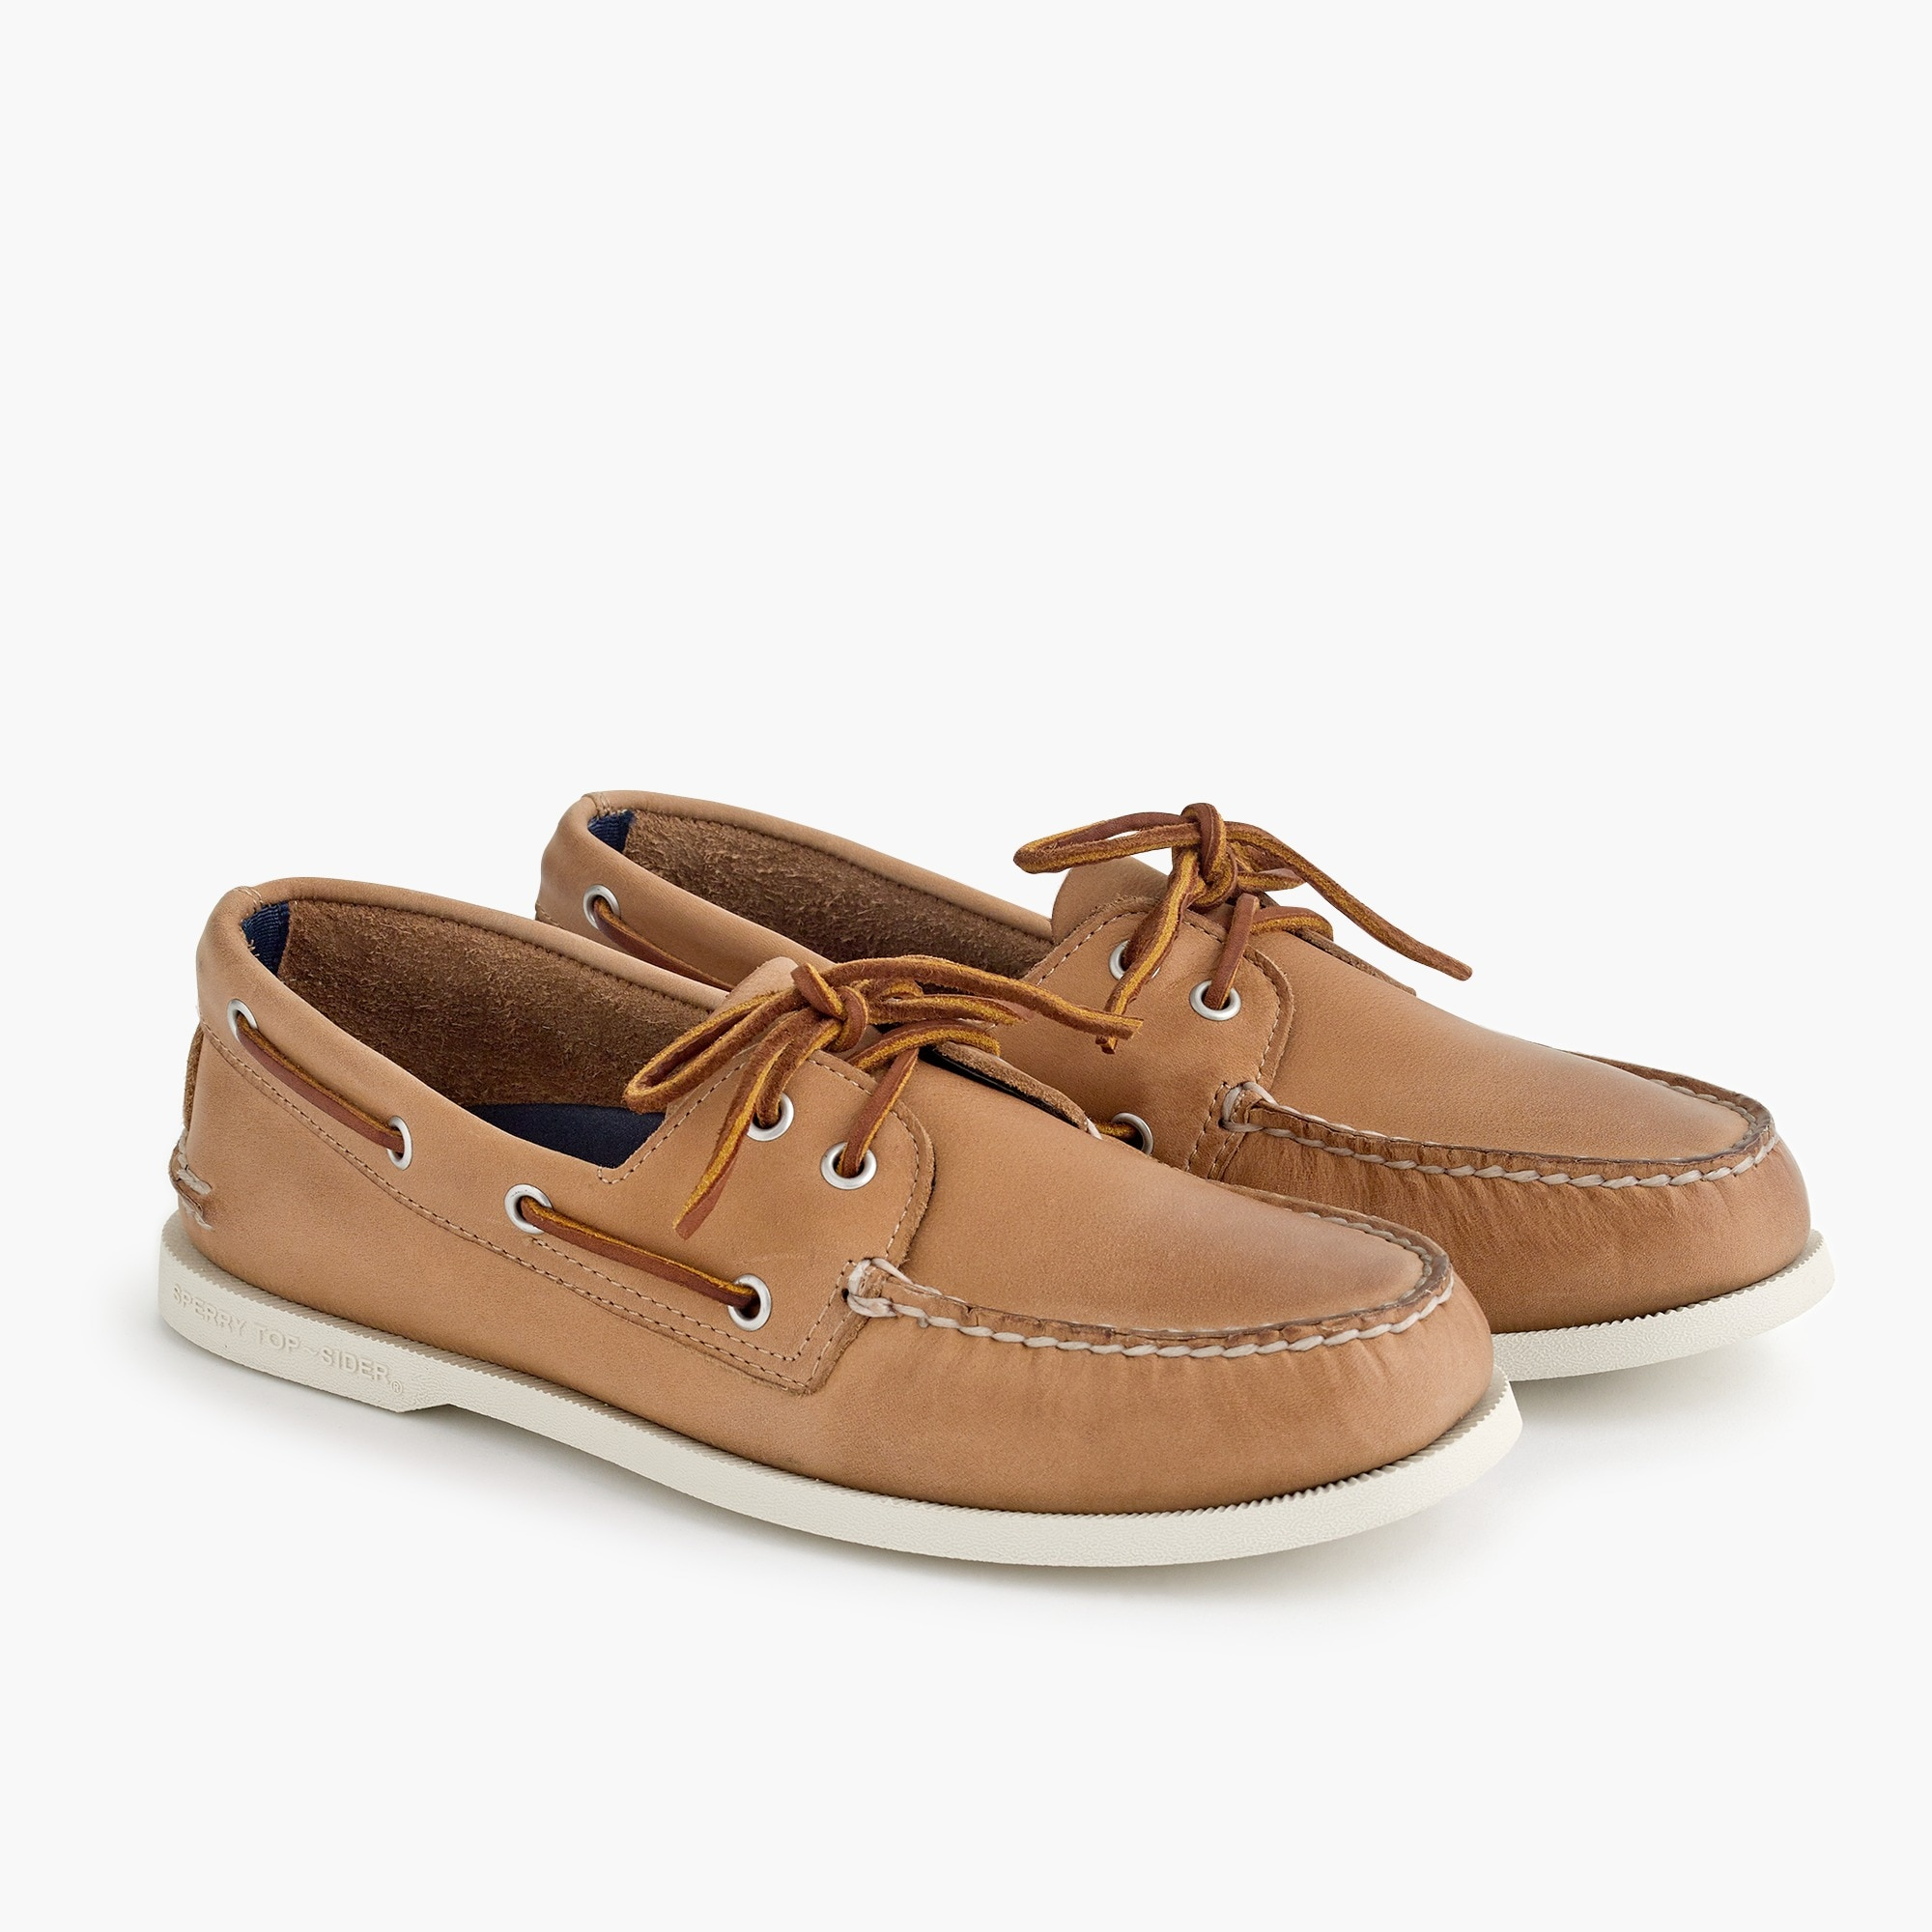 Sperry® for J.Crew Authentic Original 2-eye boat shoes in leather men j.crew in good company c